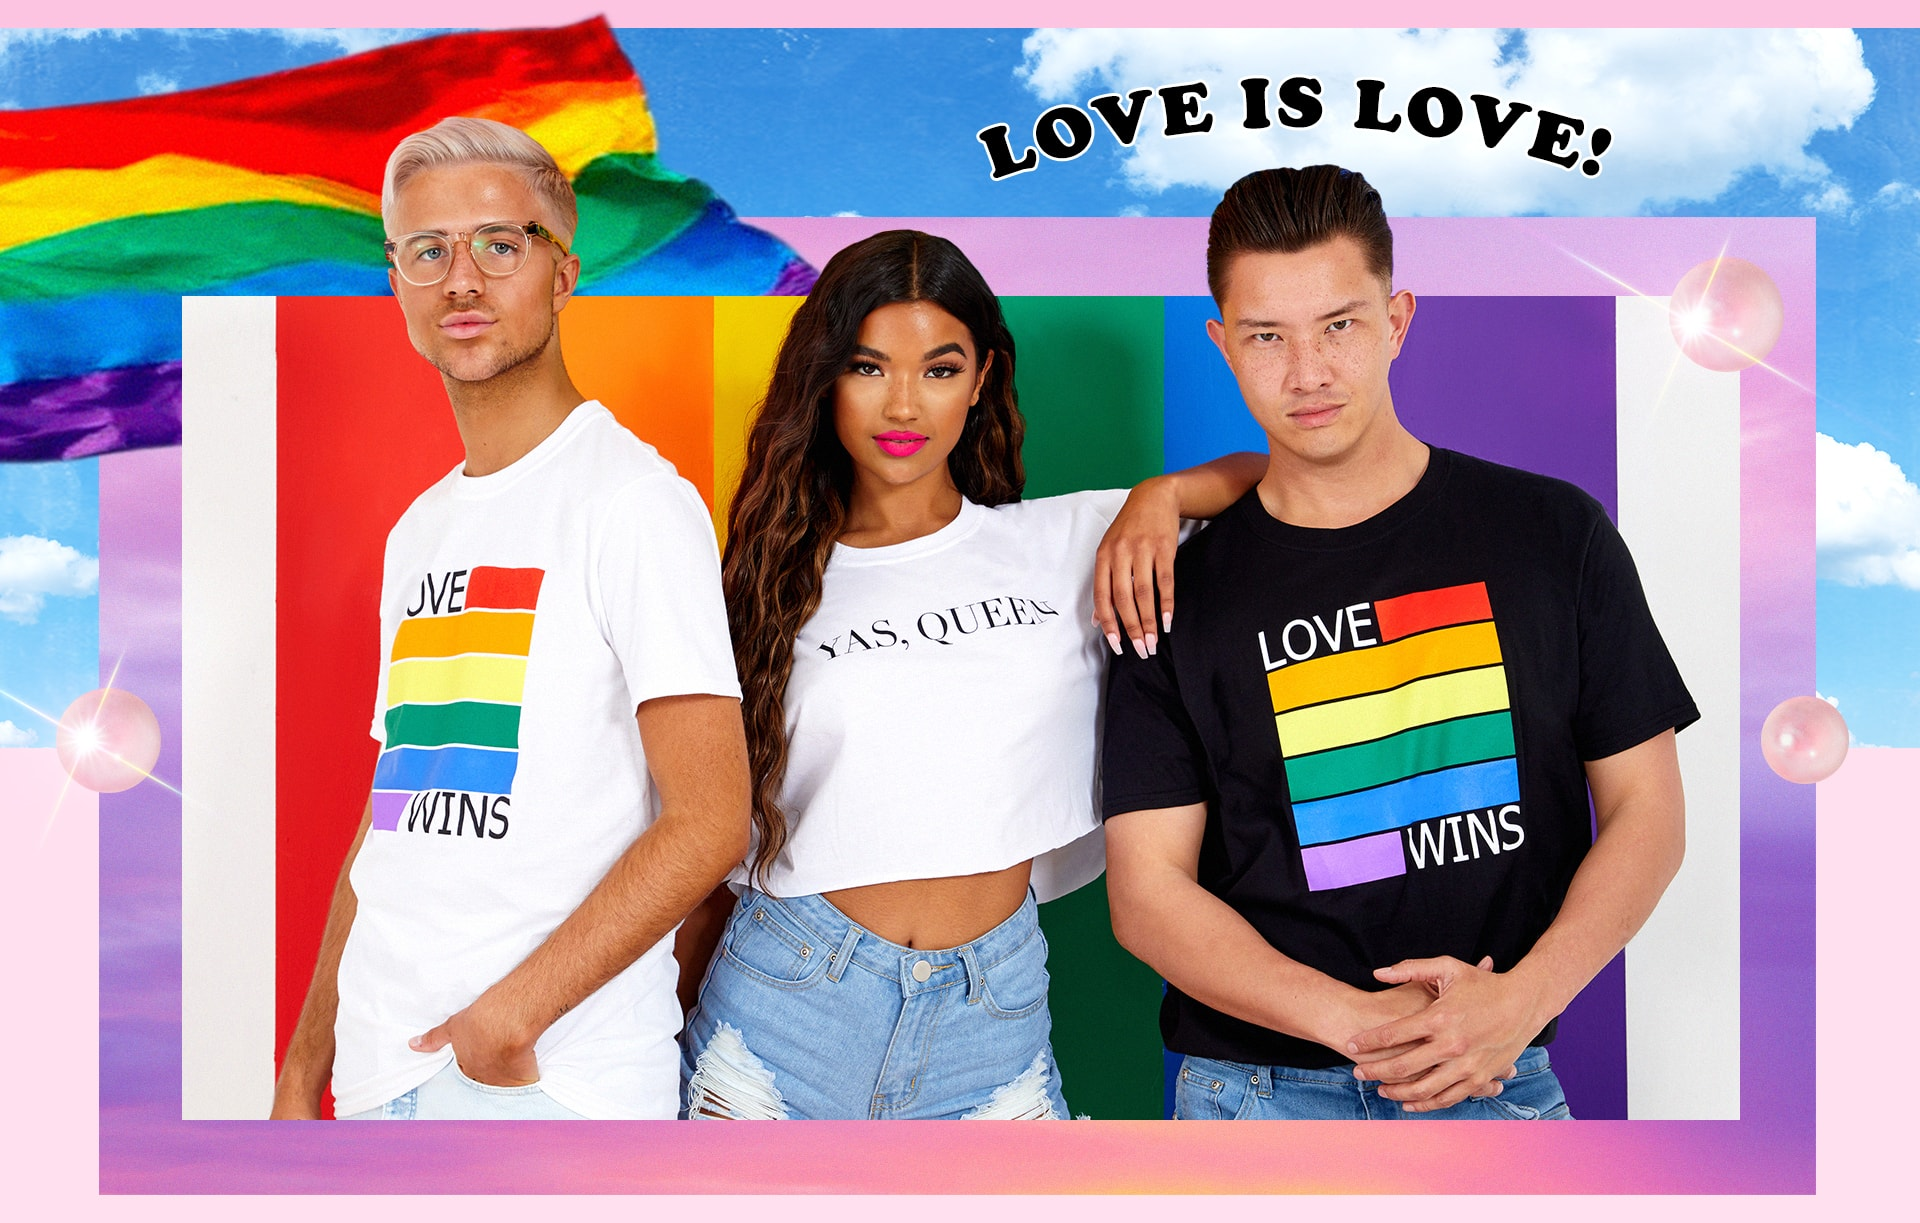 Love Wins White Tee , Love Wins Black Tee , Yas Queen White Tee